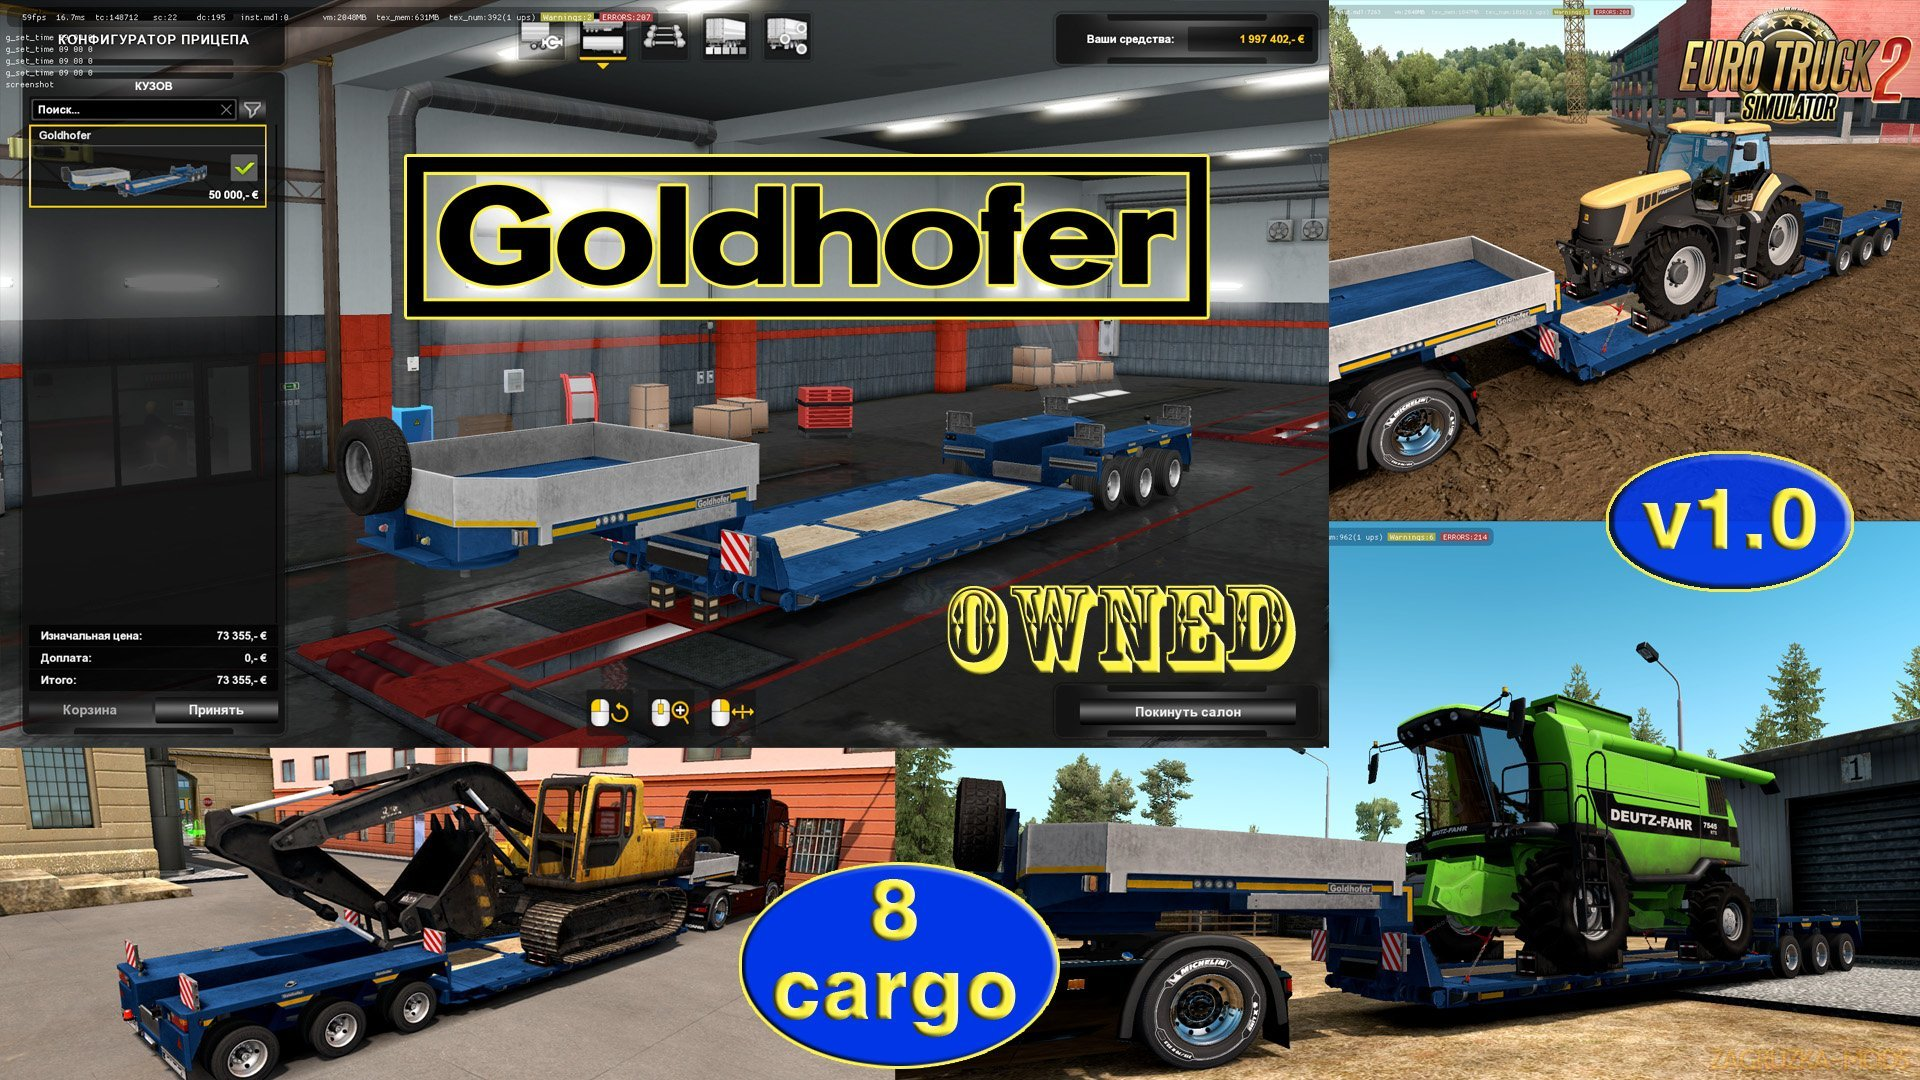 Ownable trailer Goldhofer v1.0 by Jazzycat